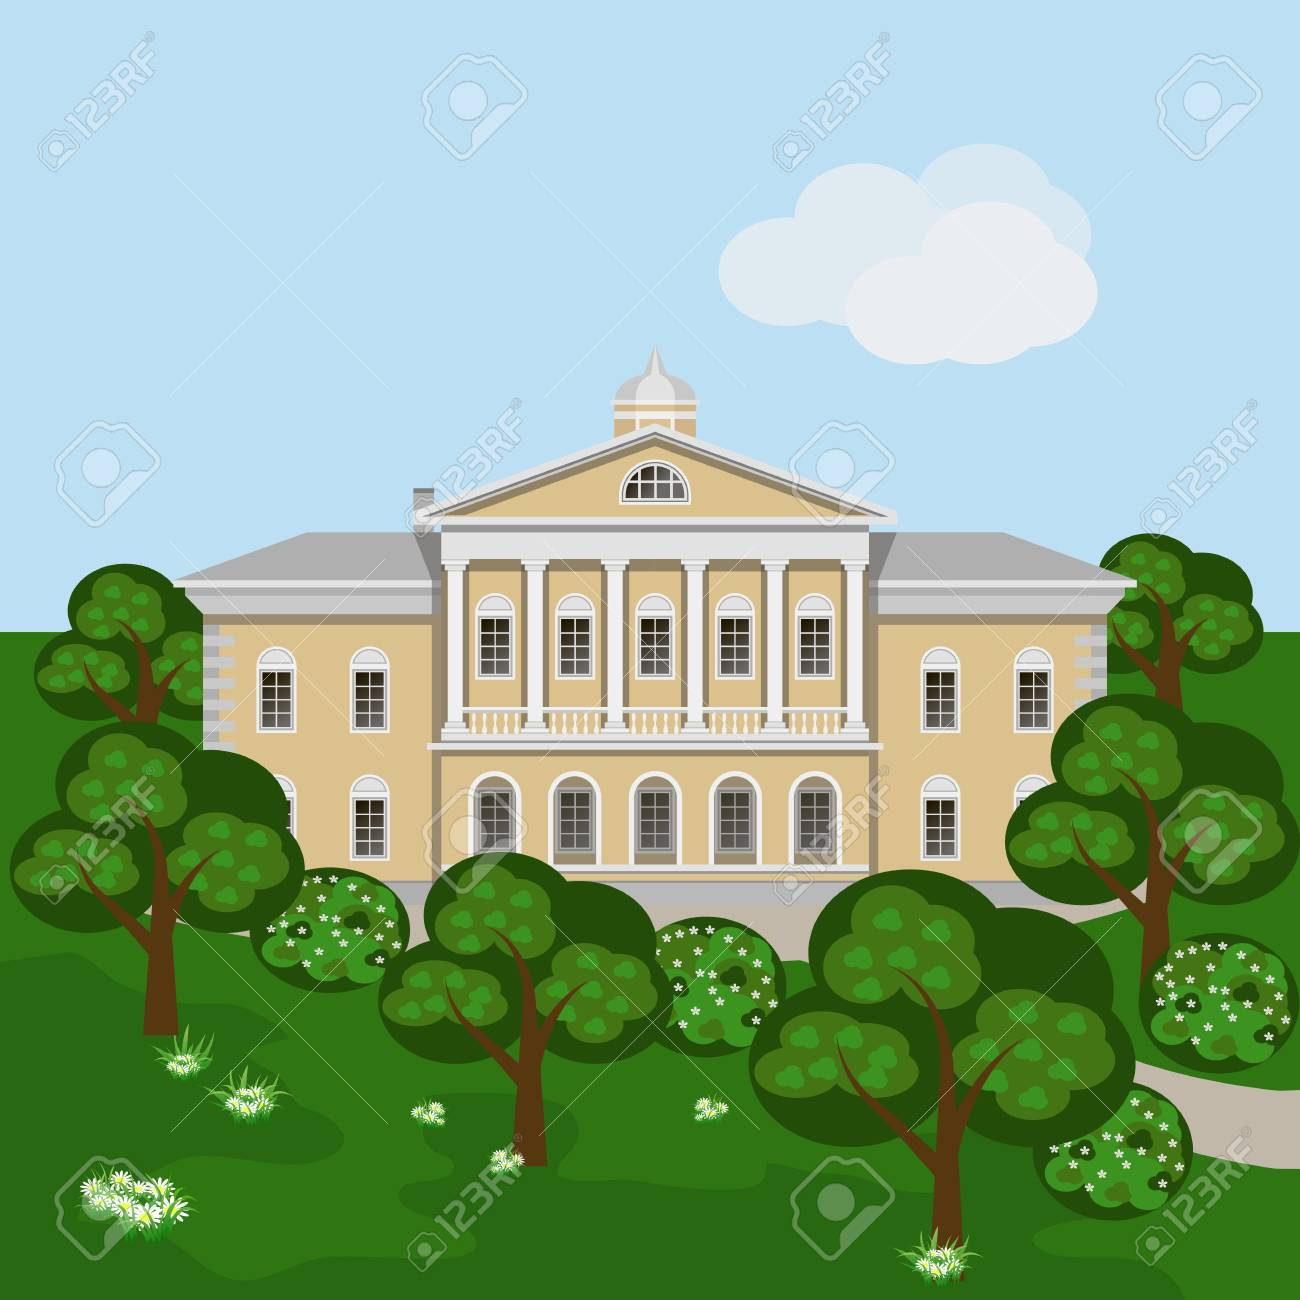 Cartoon Rich Manor House Or Palace In Green Summer Landscape Scene With Mansion Trees